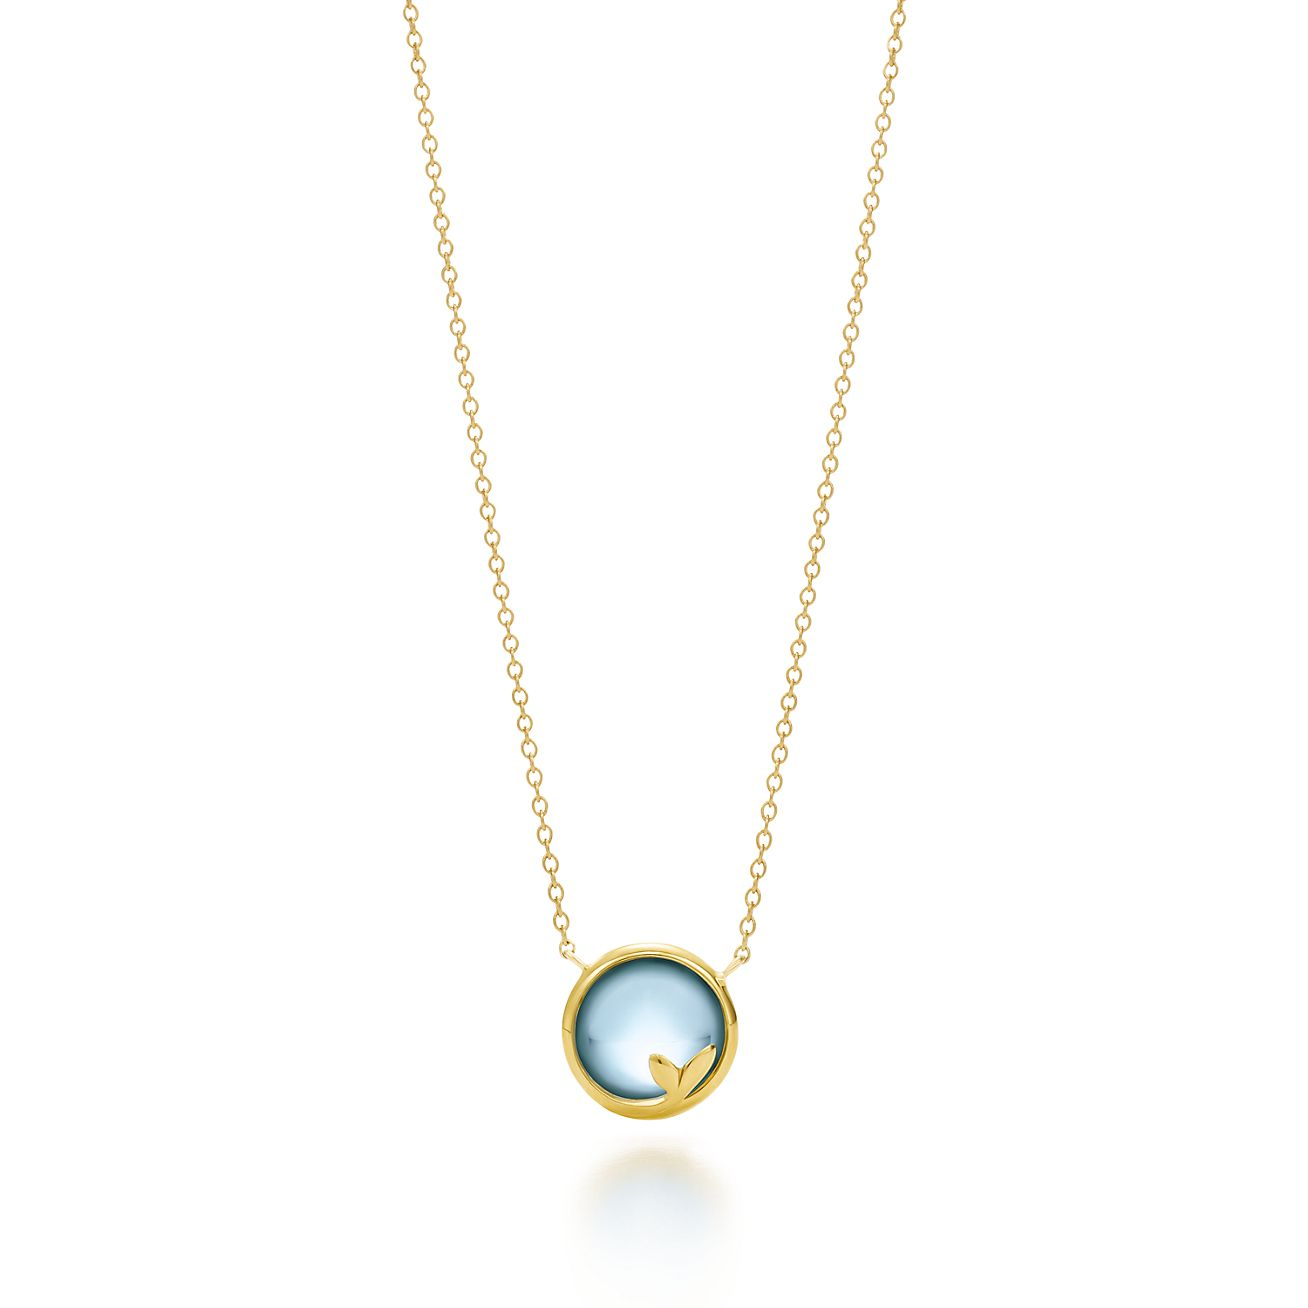 Paloma Picasso Olive Leaf pendant in 18k gold with a blue topaz - Size Tiffany & Co.